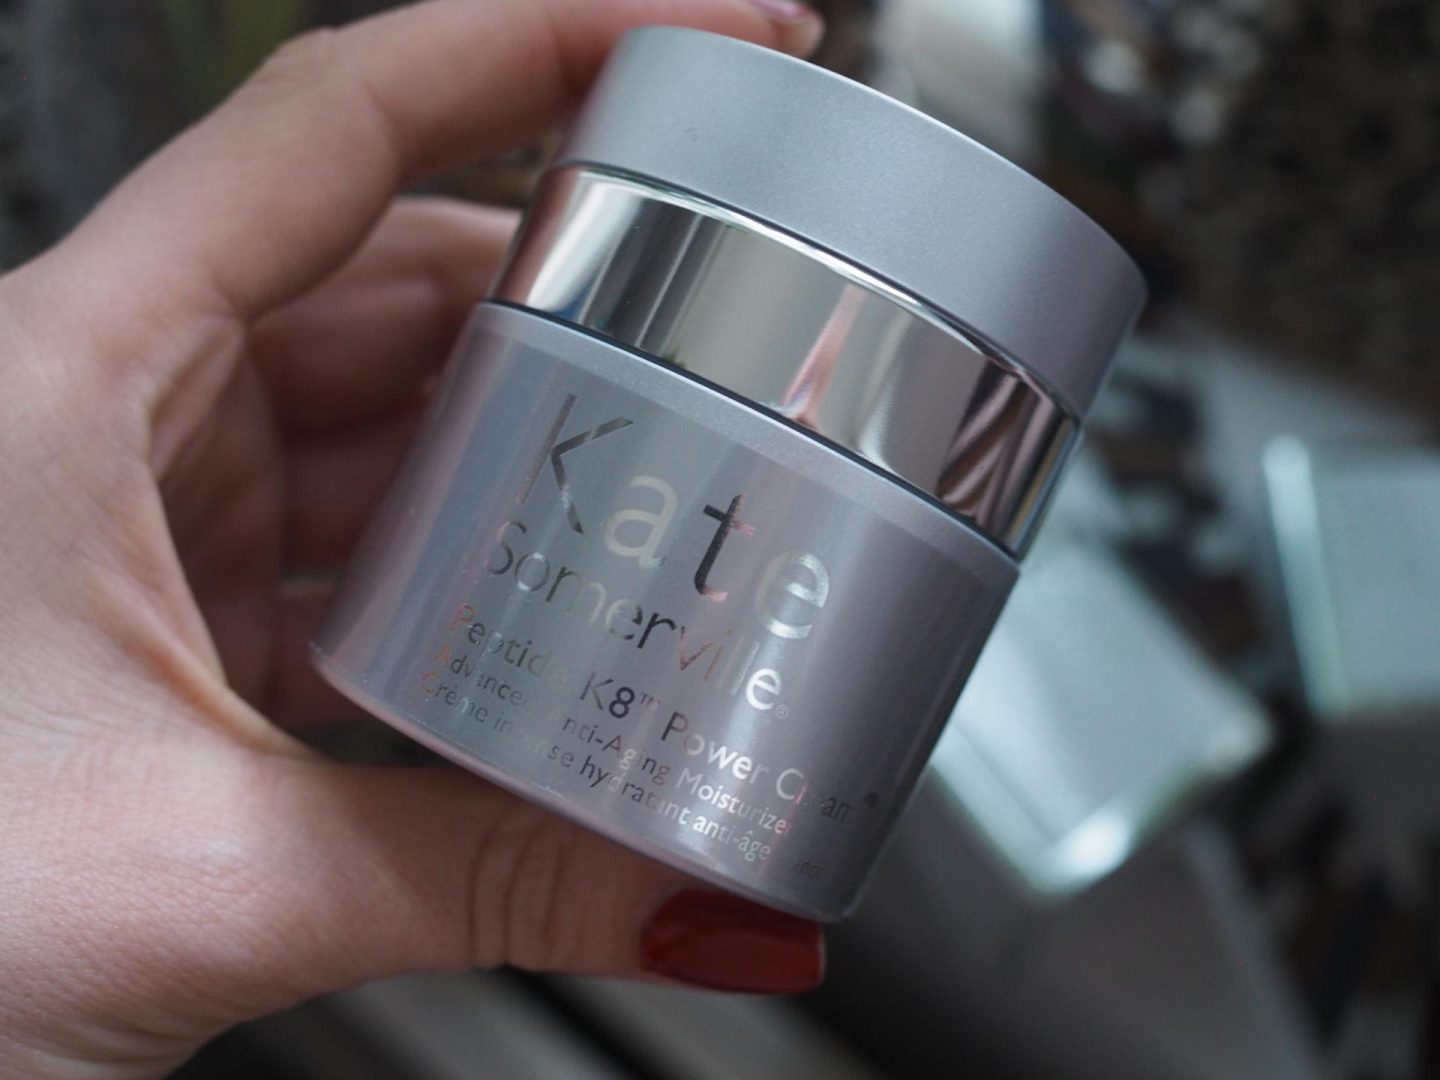 Kate Somerville Peptide K8 Power Cream